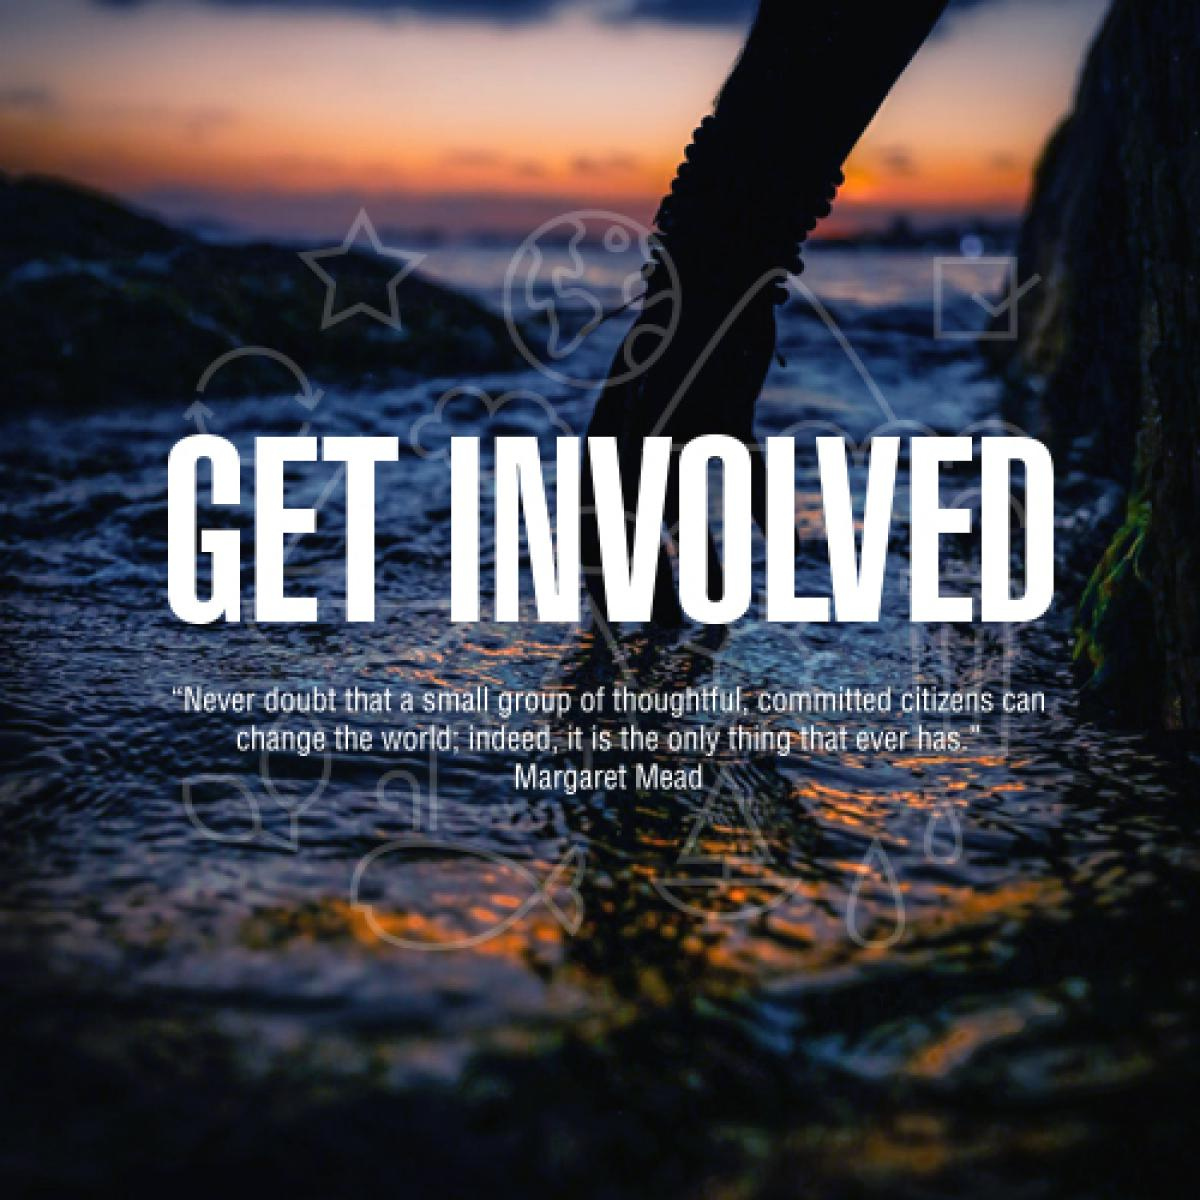 Image 0503: Get involved